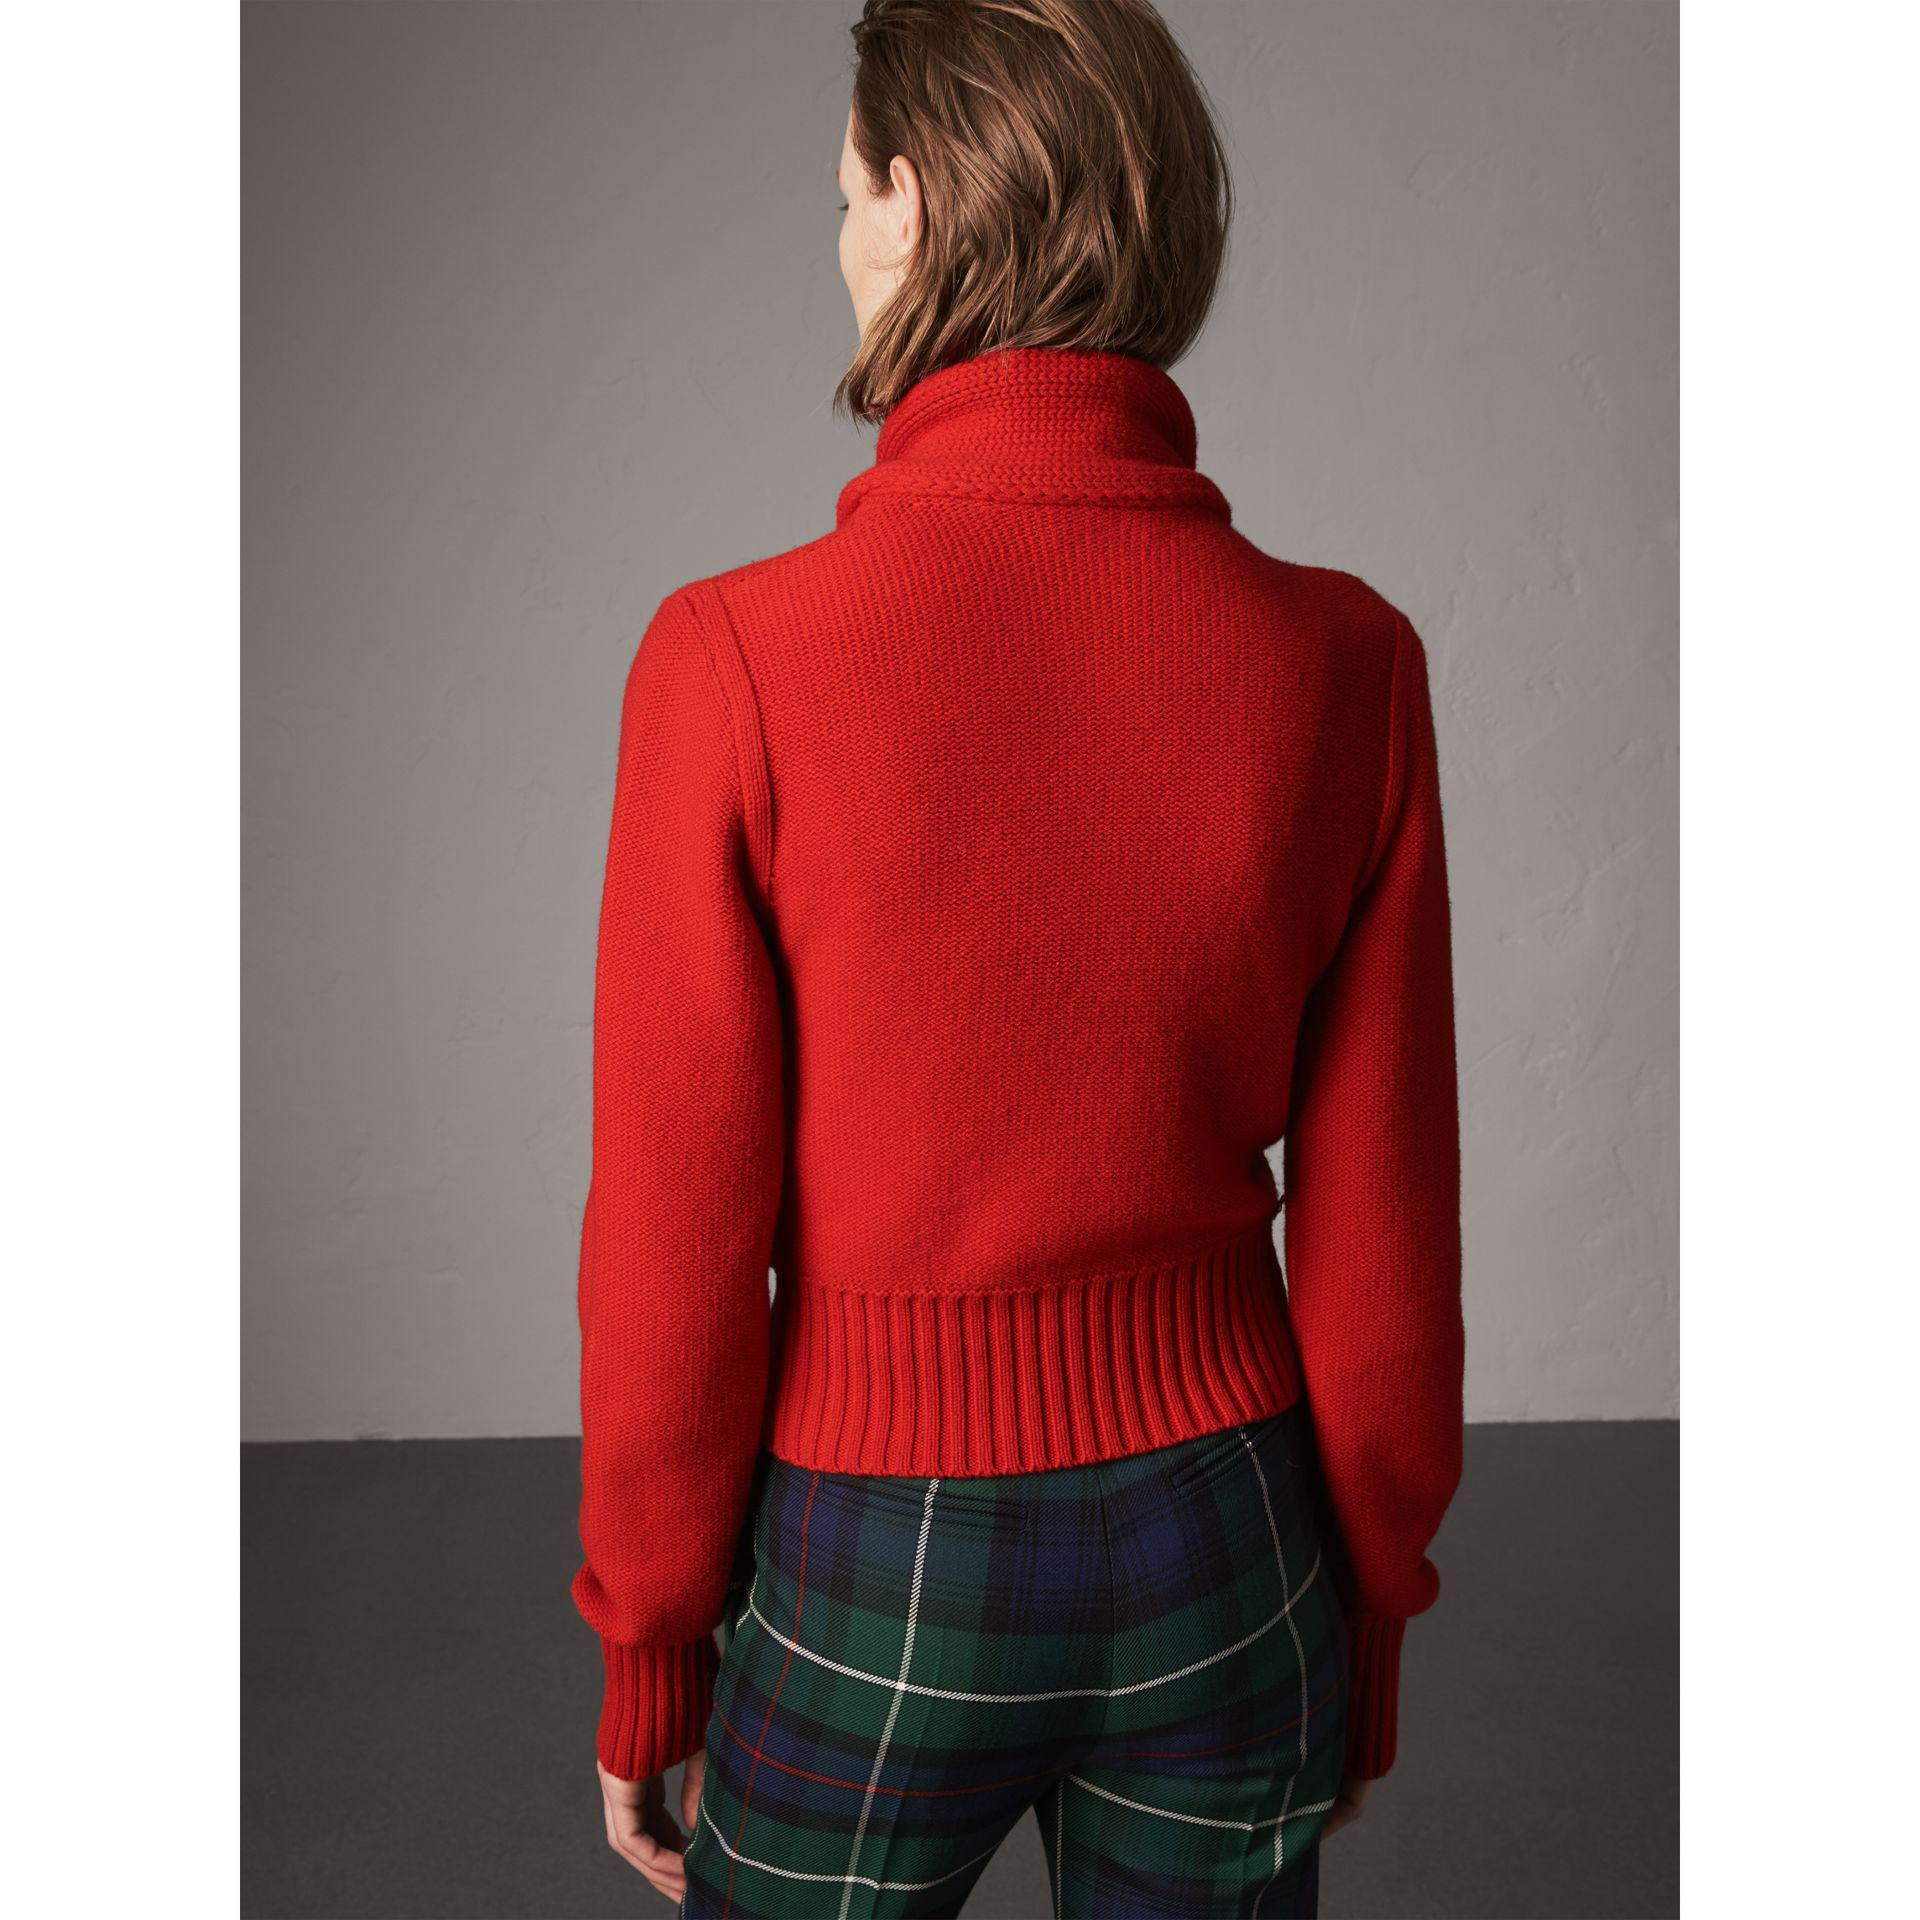 Burberry Cashmere Tie-neck Sweater in Red | Lyst